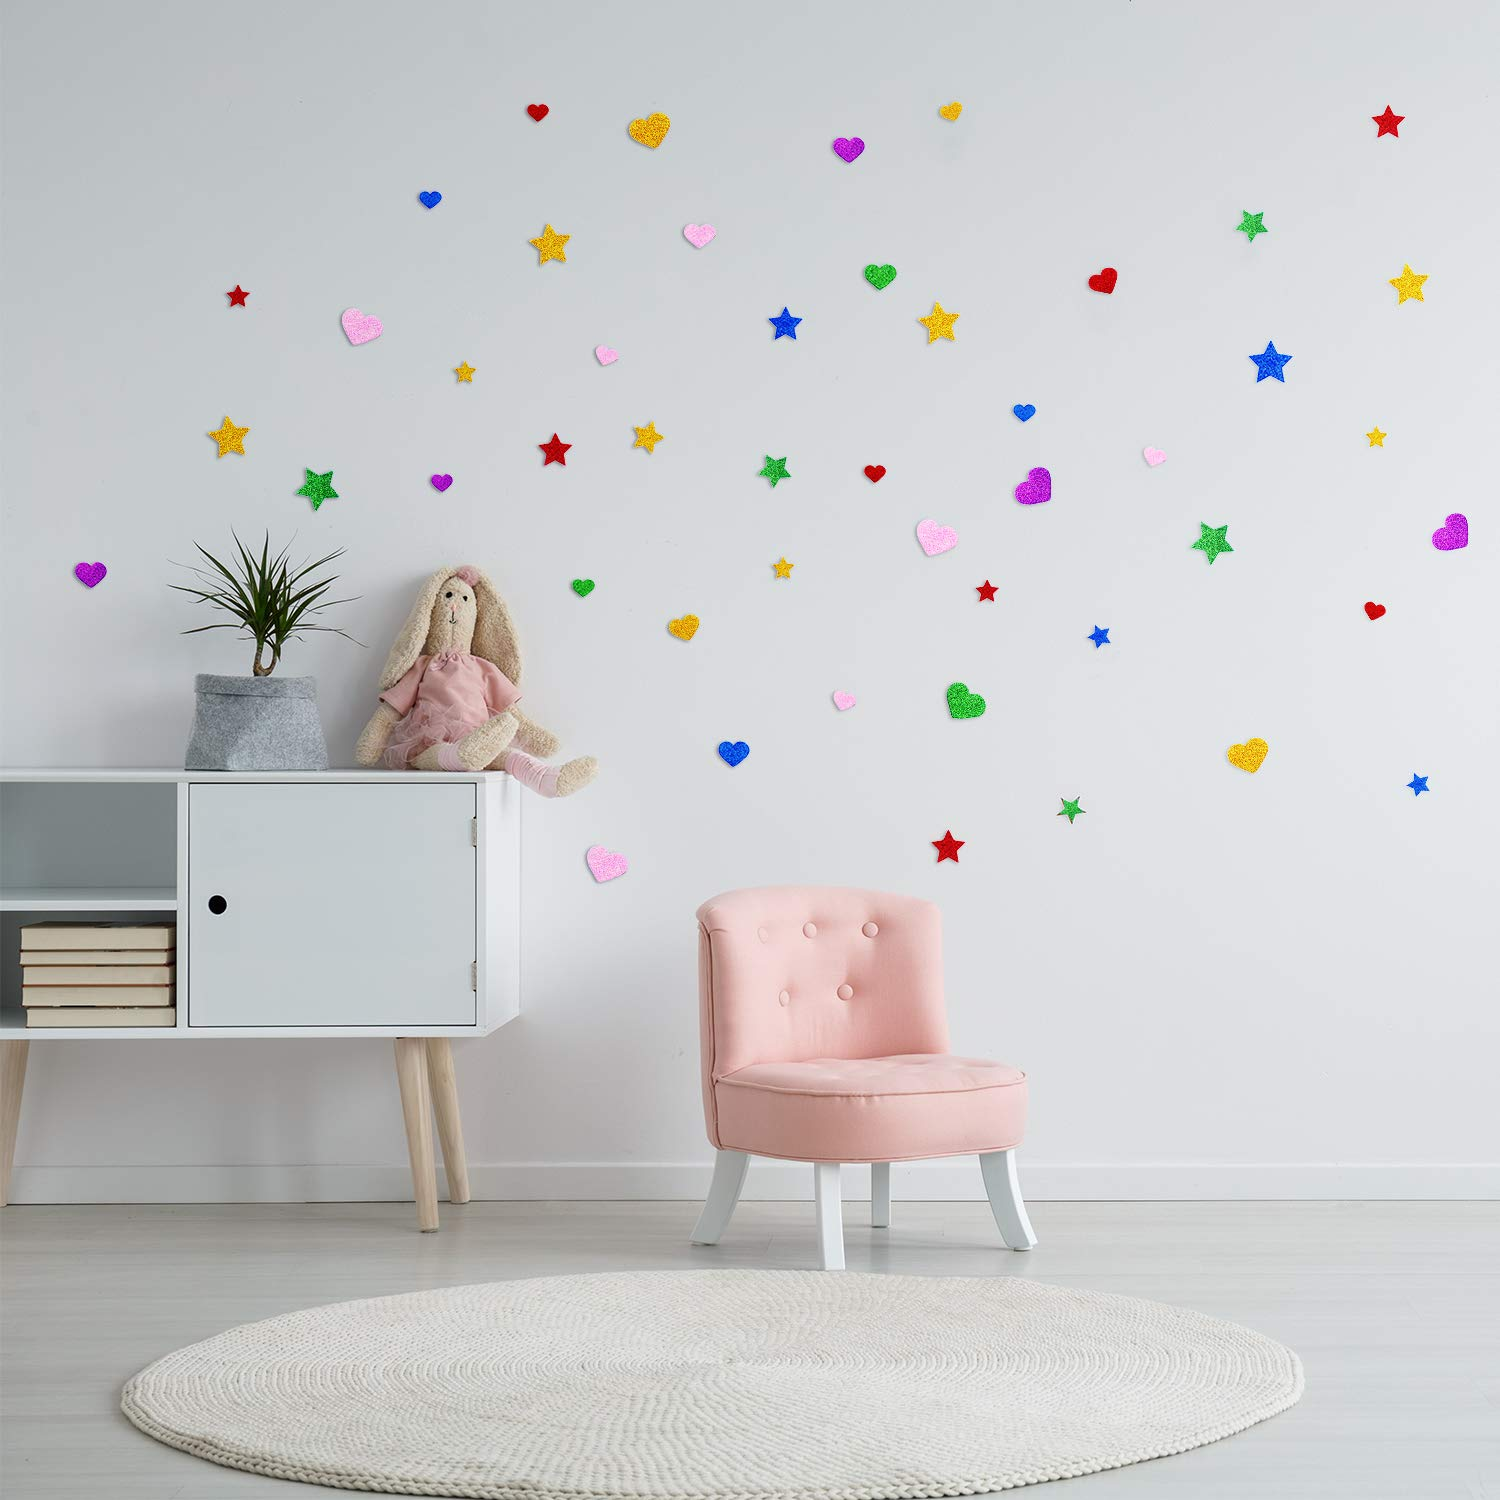 600 Pieces Kid/'s Arts Craft Supplies Kids Arts Craft Supplies 600 Pieces Tatuo Foam Glitter Stickers Foam Hearts Star Shapes Stickers Colorful Self Adhesive Foam Stickers for Mothers Day Cards